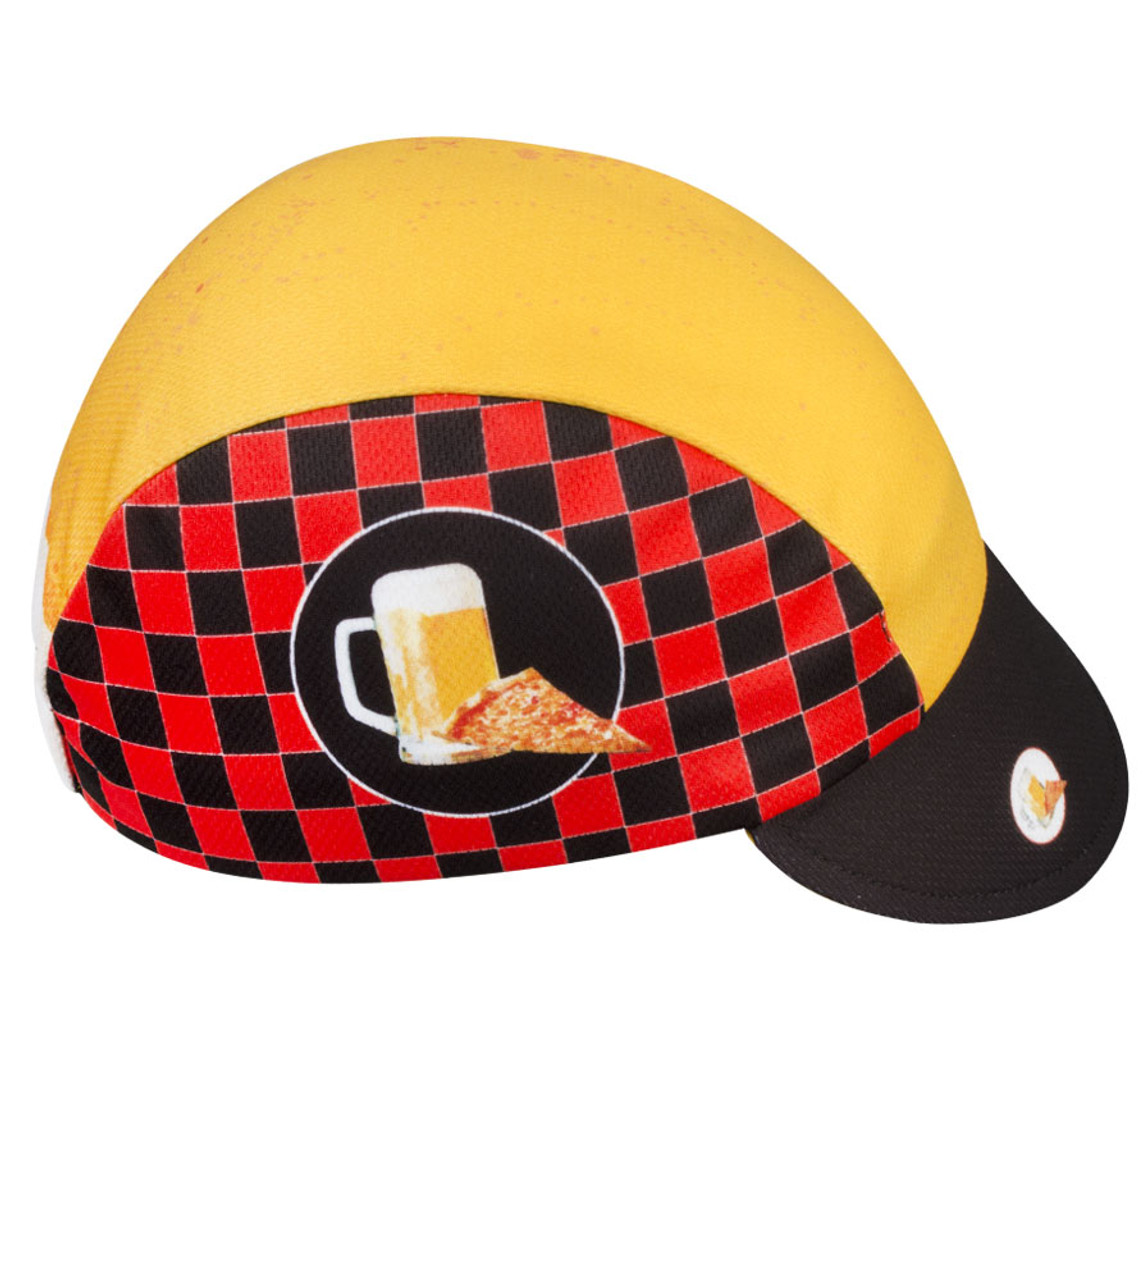 Aero Tech Rush Cycling Caps Pizza And Beer Made In Usa